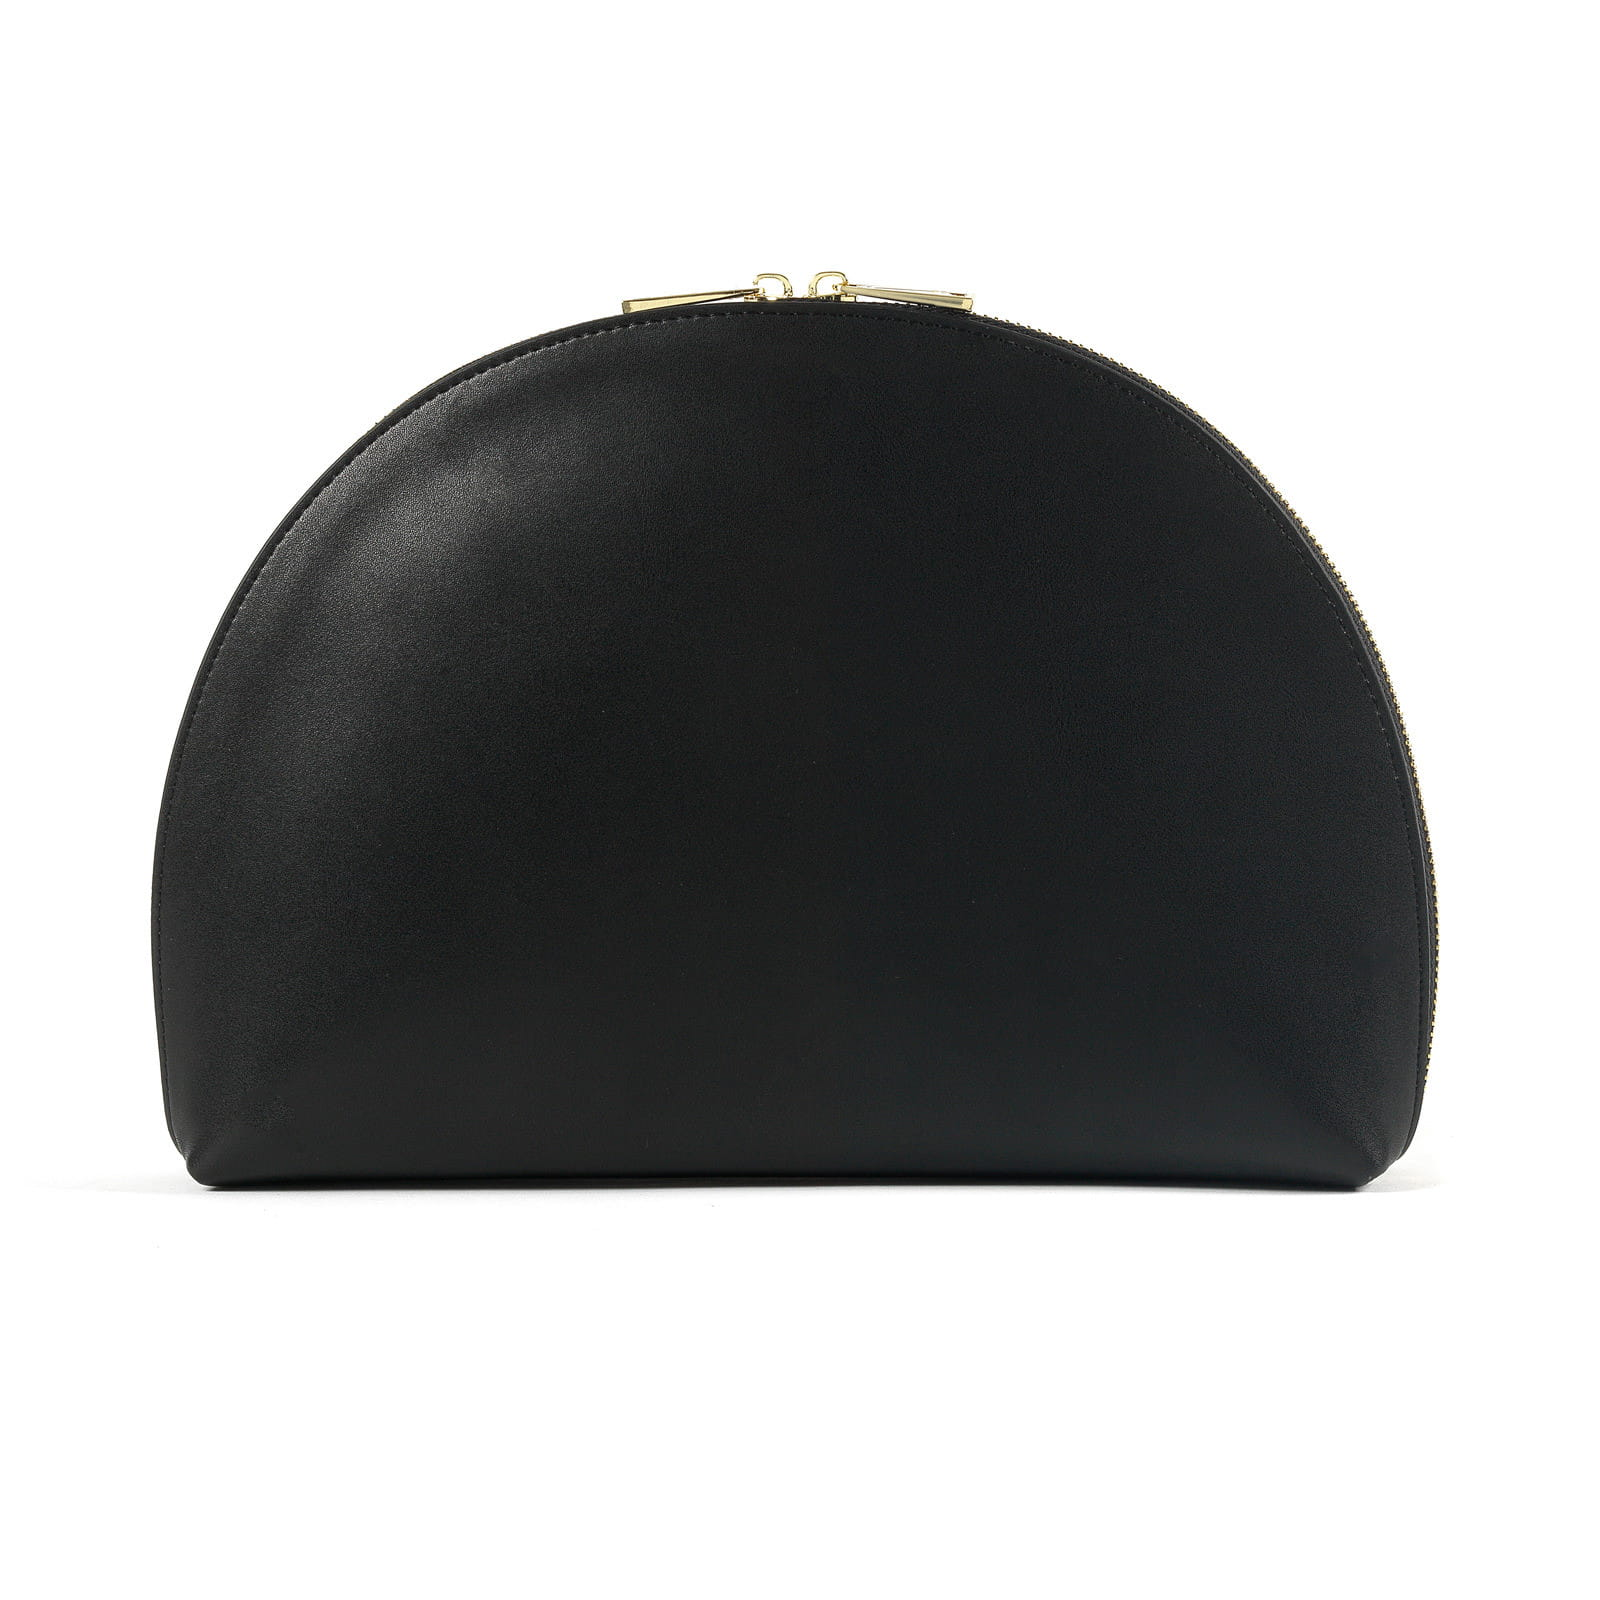 Blank Personalised Black Smooth Leather Half Moon Clutch